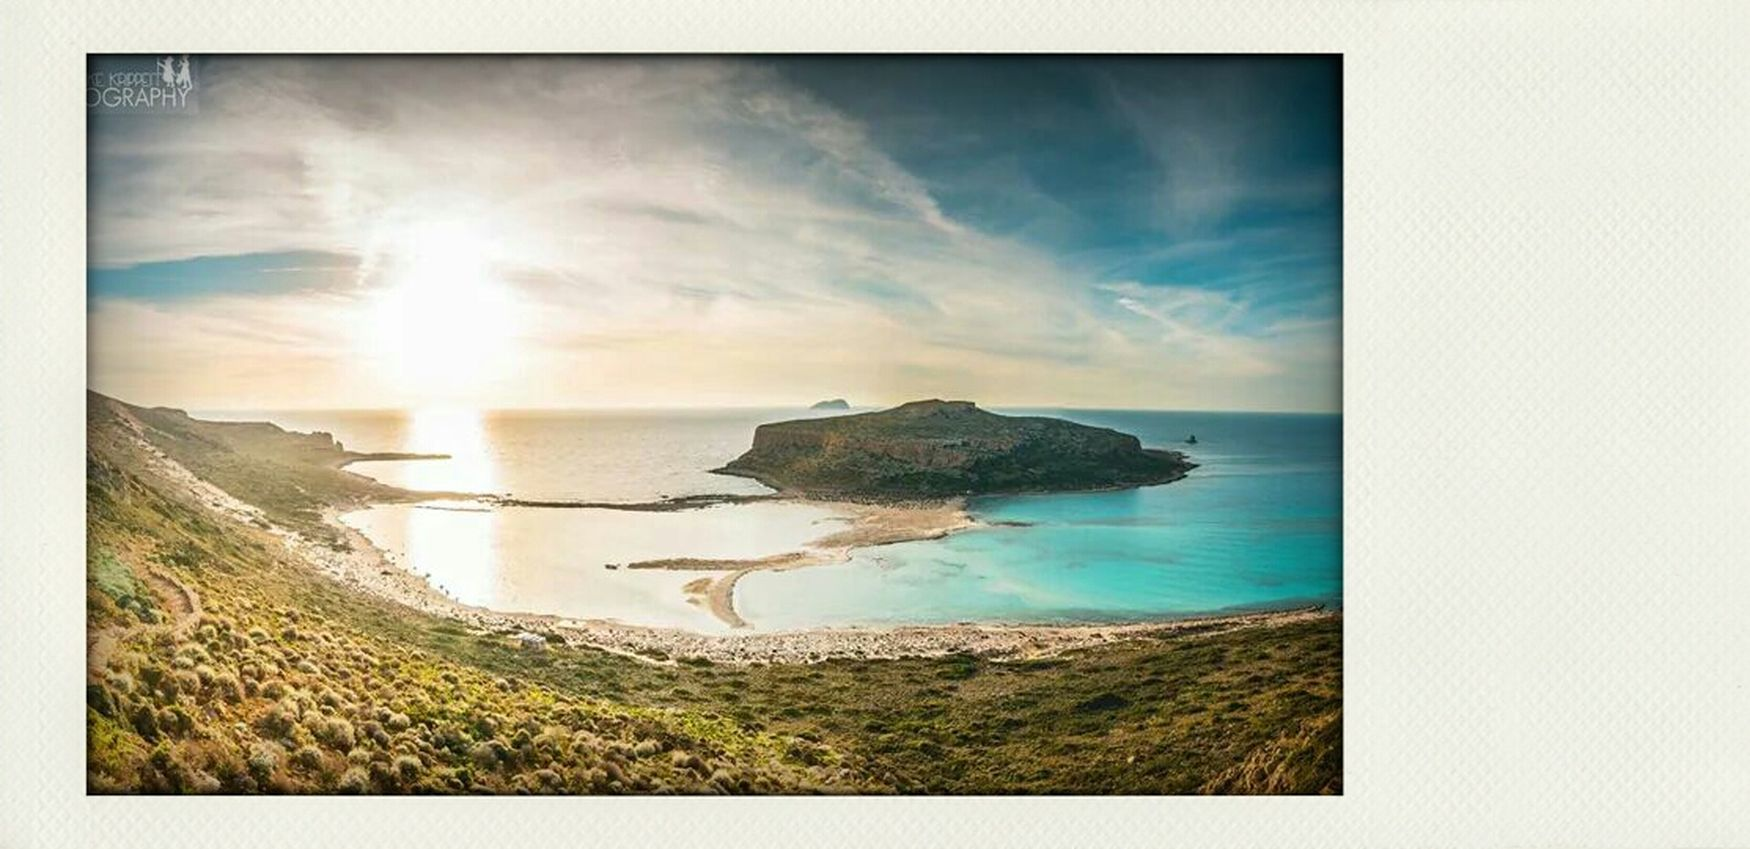 Yeah my facebookpage finally starts to grow! So happy i posted my favorite photo of balos beach right on spot. Wanna see the whole panoramic landscape shot? Www.facebook.com/apocketfuloffairytales :) see you there!!! Would be happy to welcome you too!! Crete EyeEm Best Edits EyeEm Best Shots - Landscape EyeEm Best ShotsLife Is A BeachBeachphotographyTraumstrandGreeceGreexeBeachLandscapeShootermagAMPtPostcardsfromtheworldPostcardTravel Photography